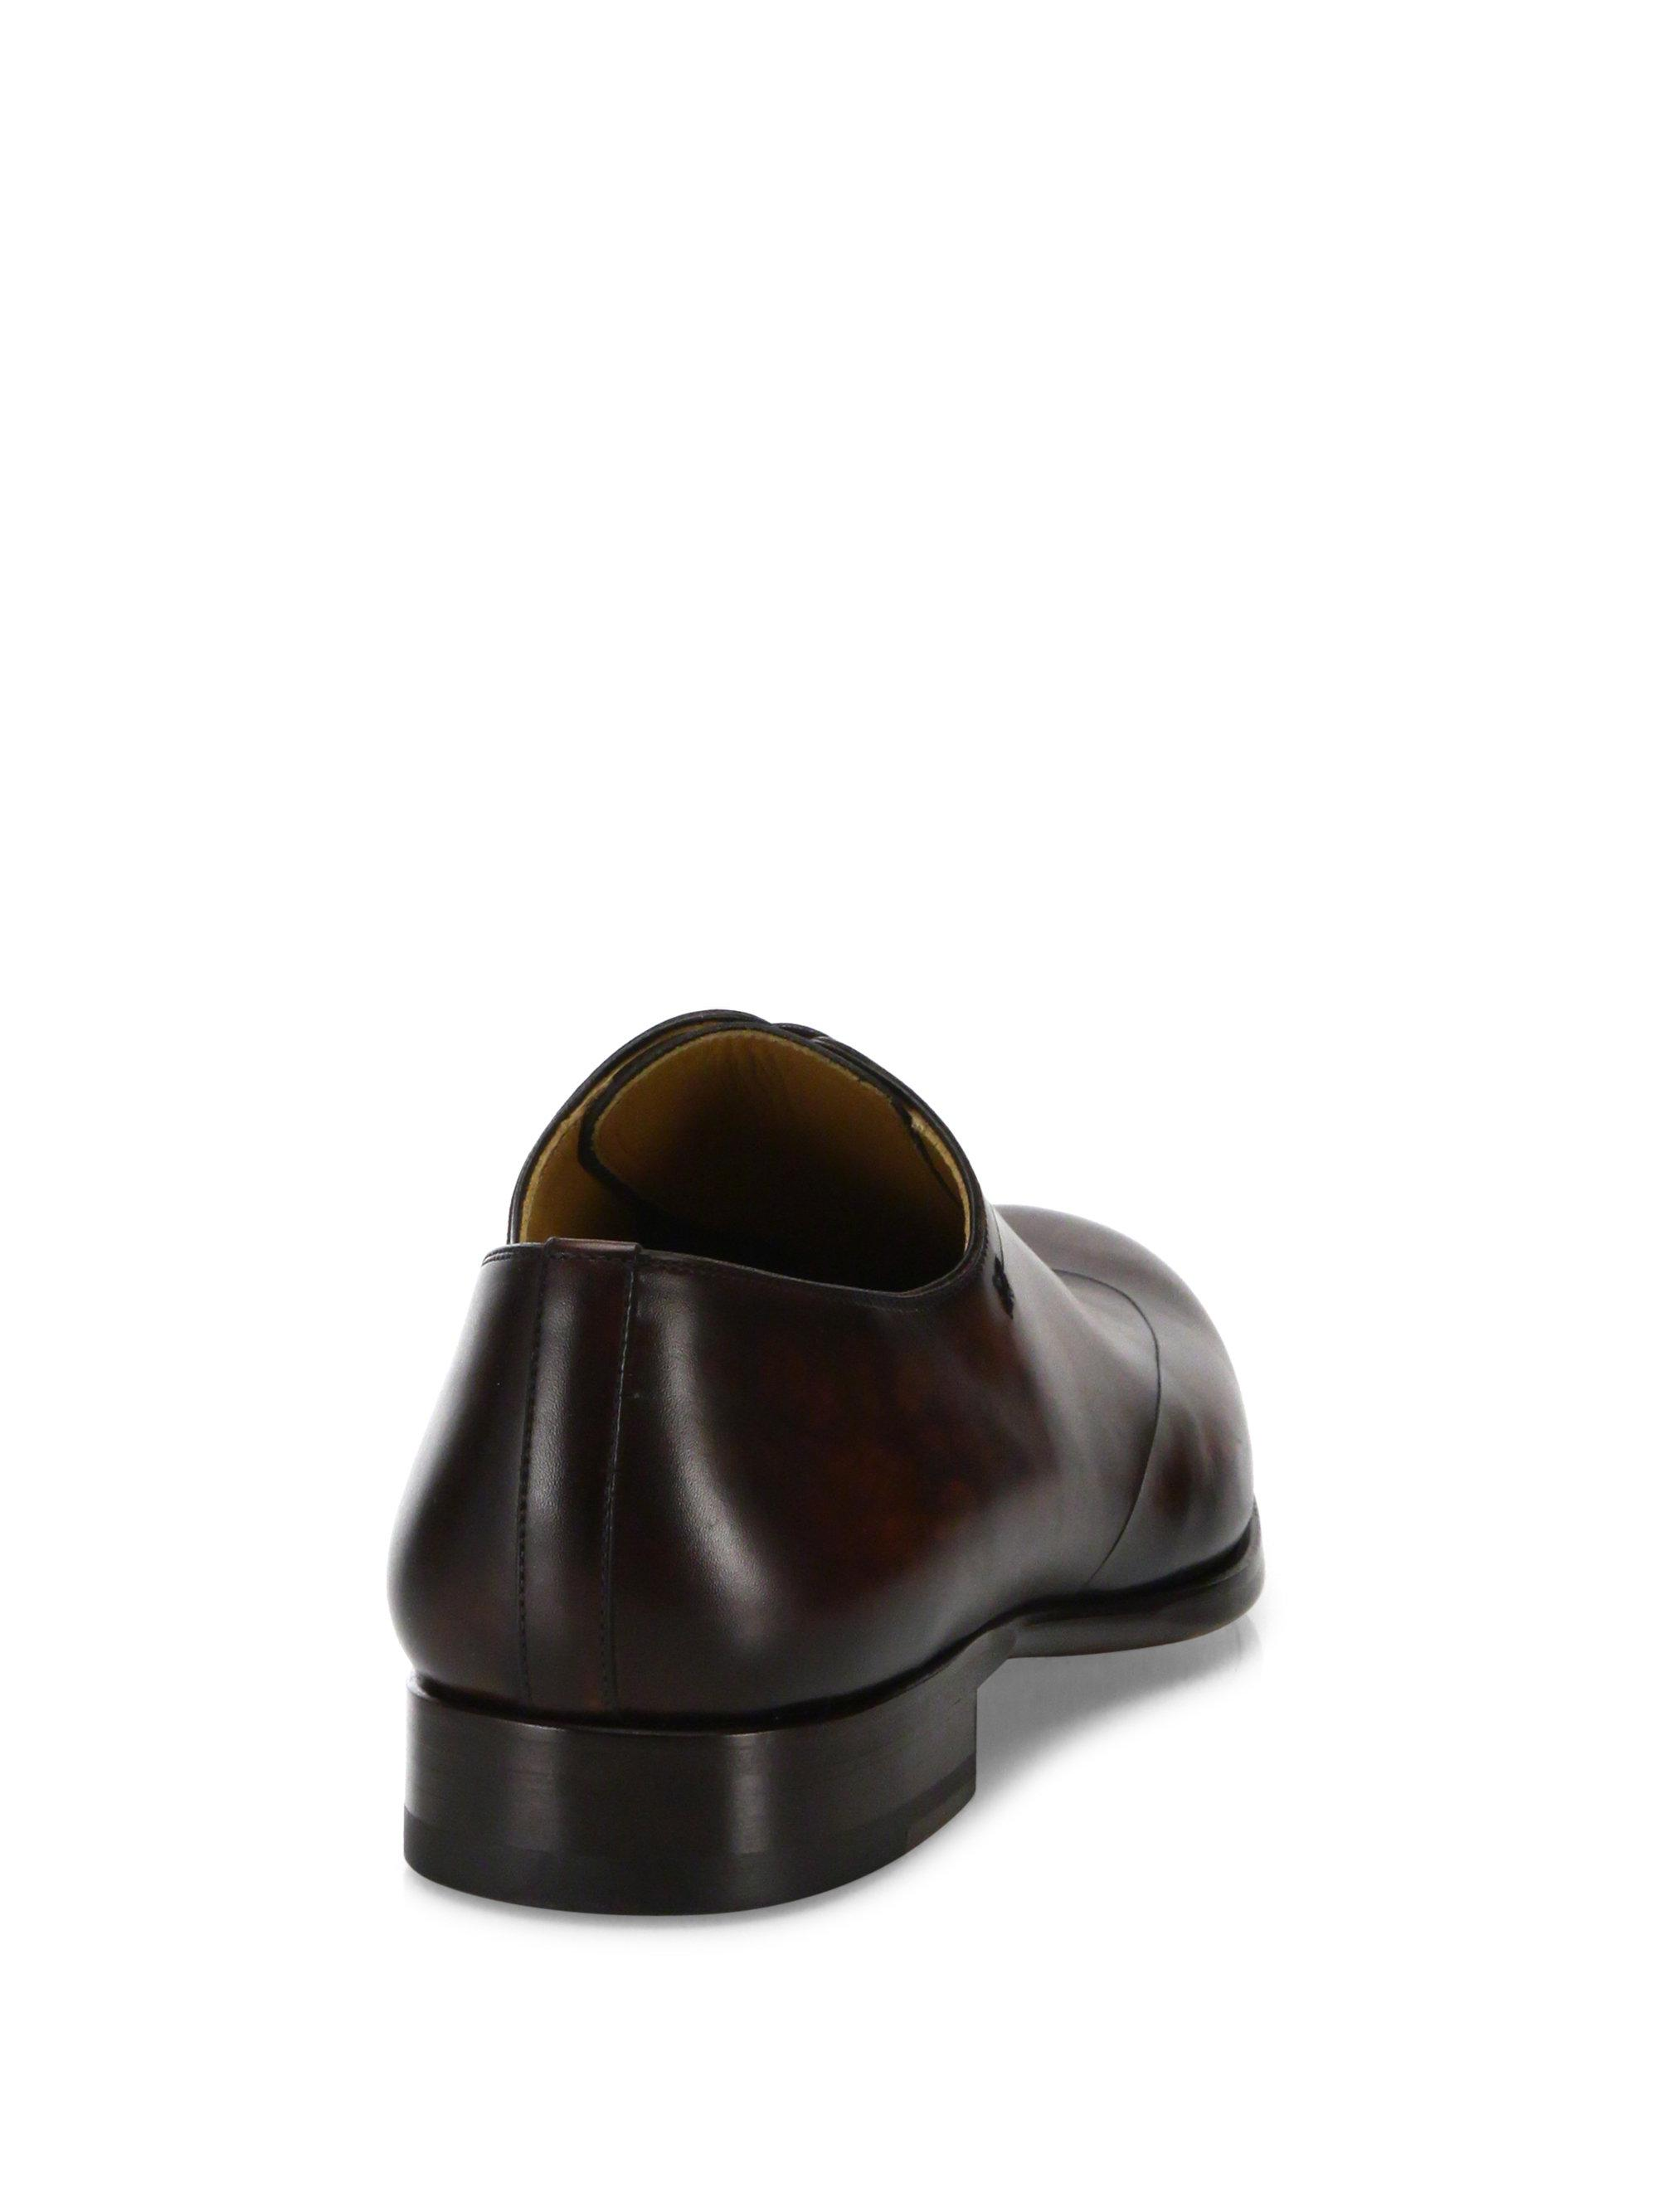 Saks Fifth AvenueCOLLECTION BY MAGNANNI Laser-Cut Lace-Up Dress Shoes hjH9m